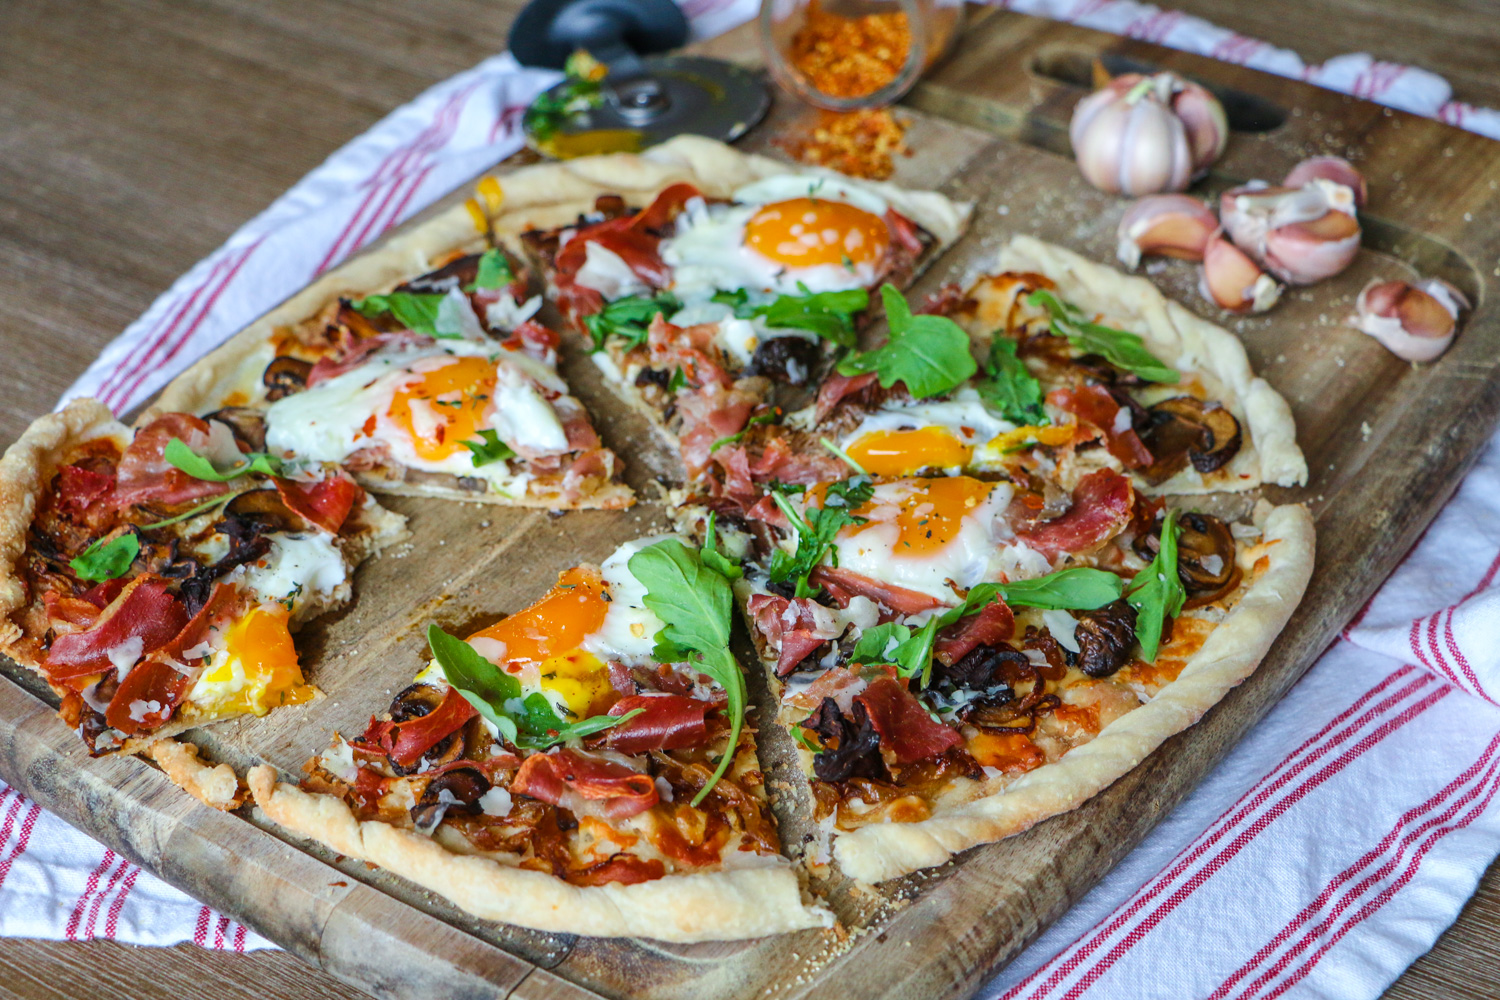 Breakfast pizza with arugula, soft bakes eggs, caramelized onions, and prosciutto